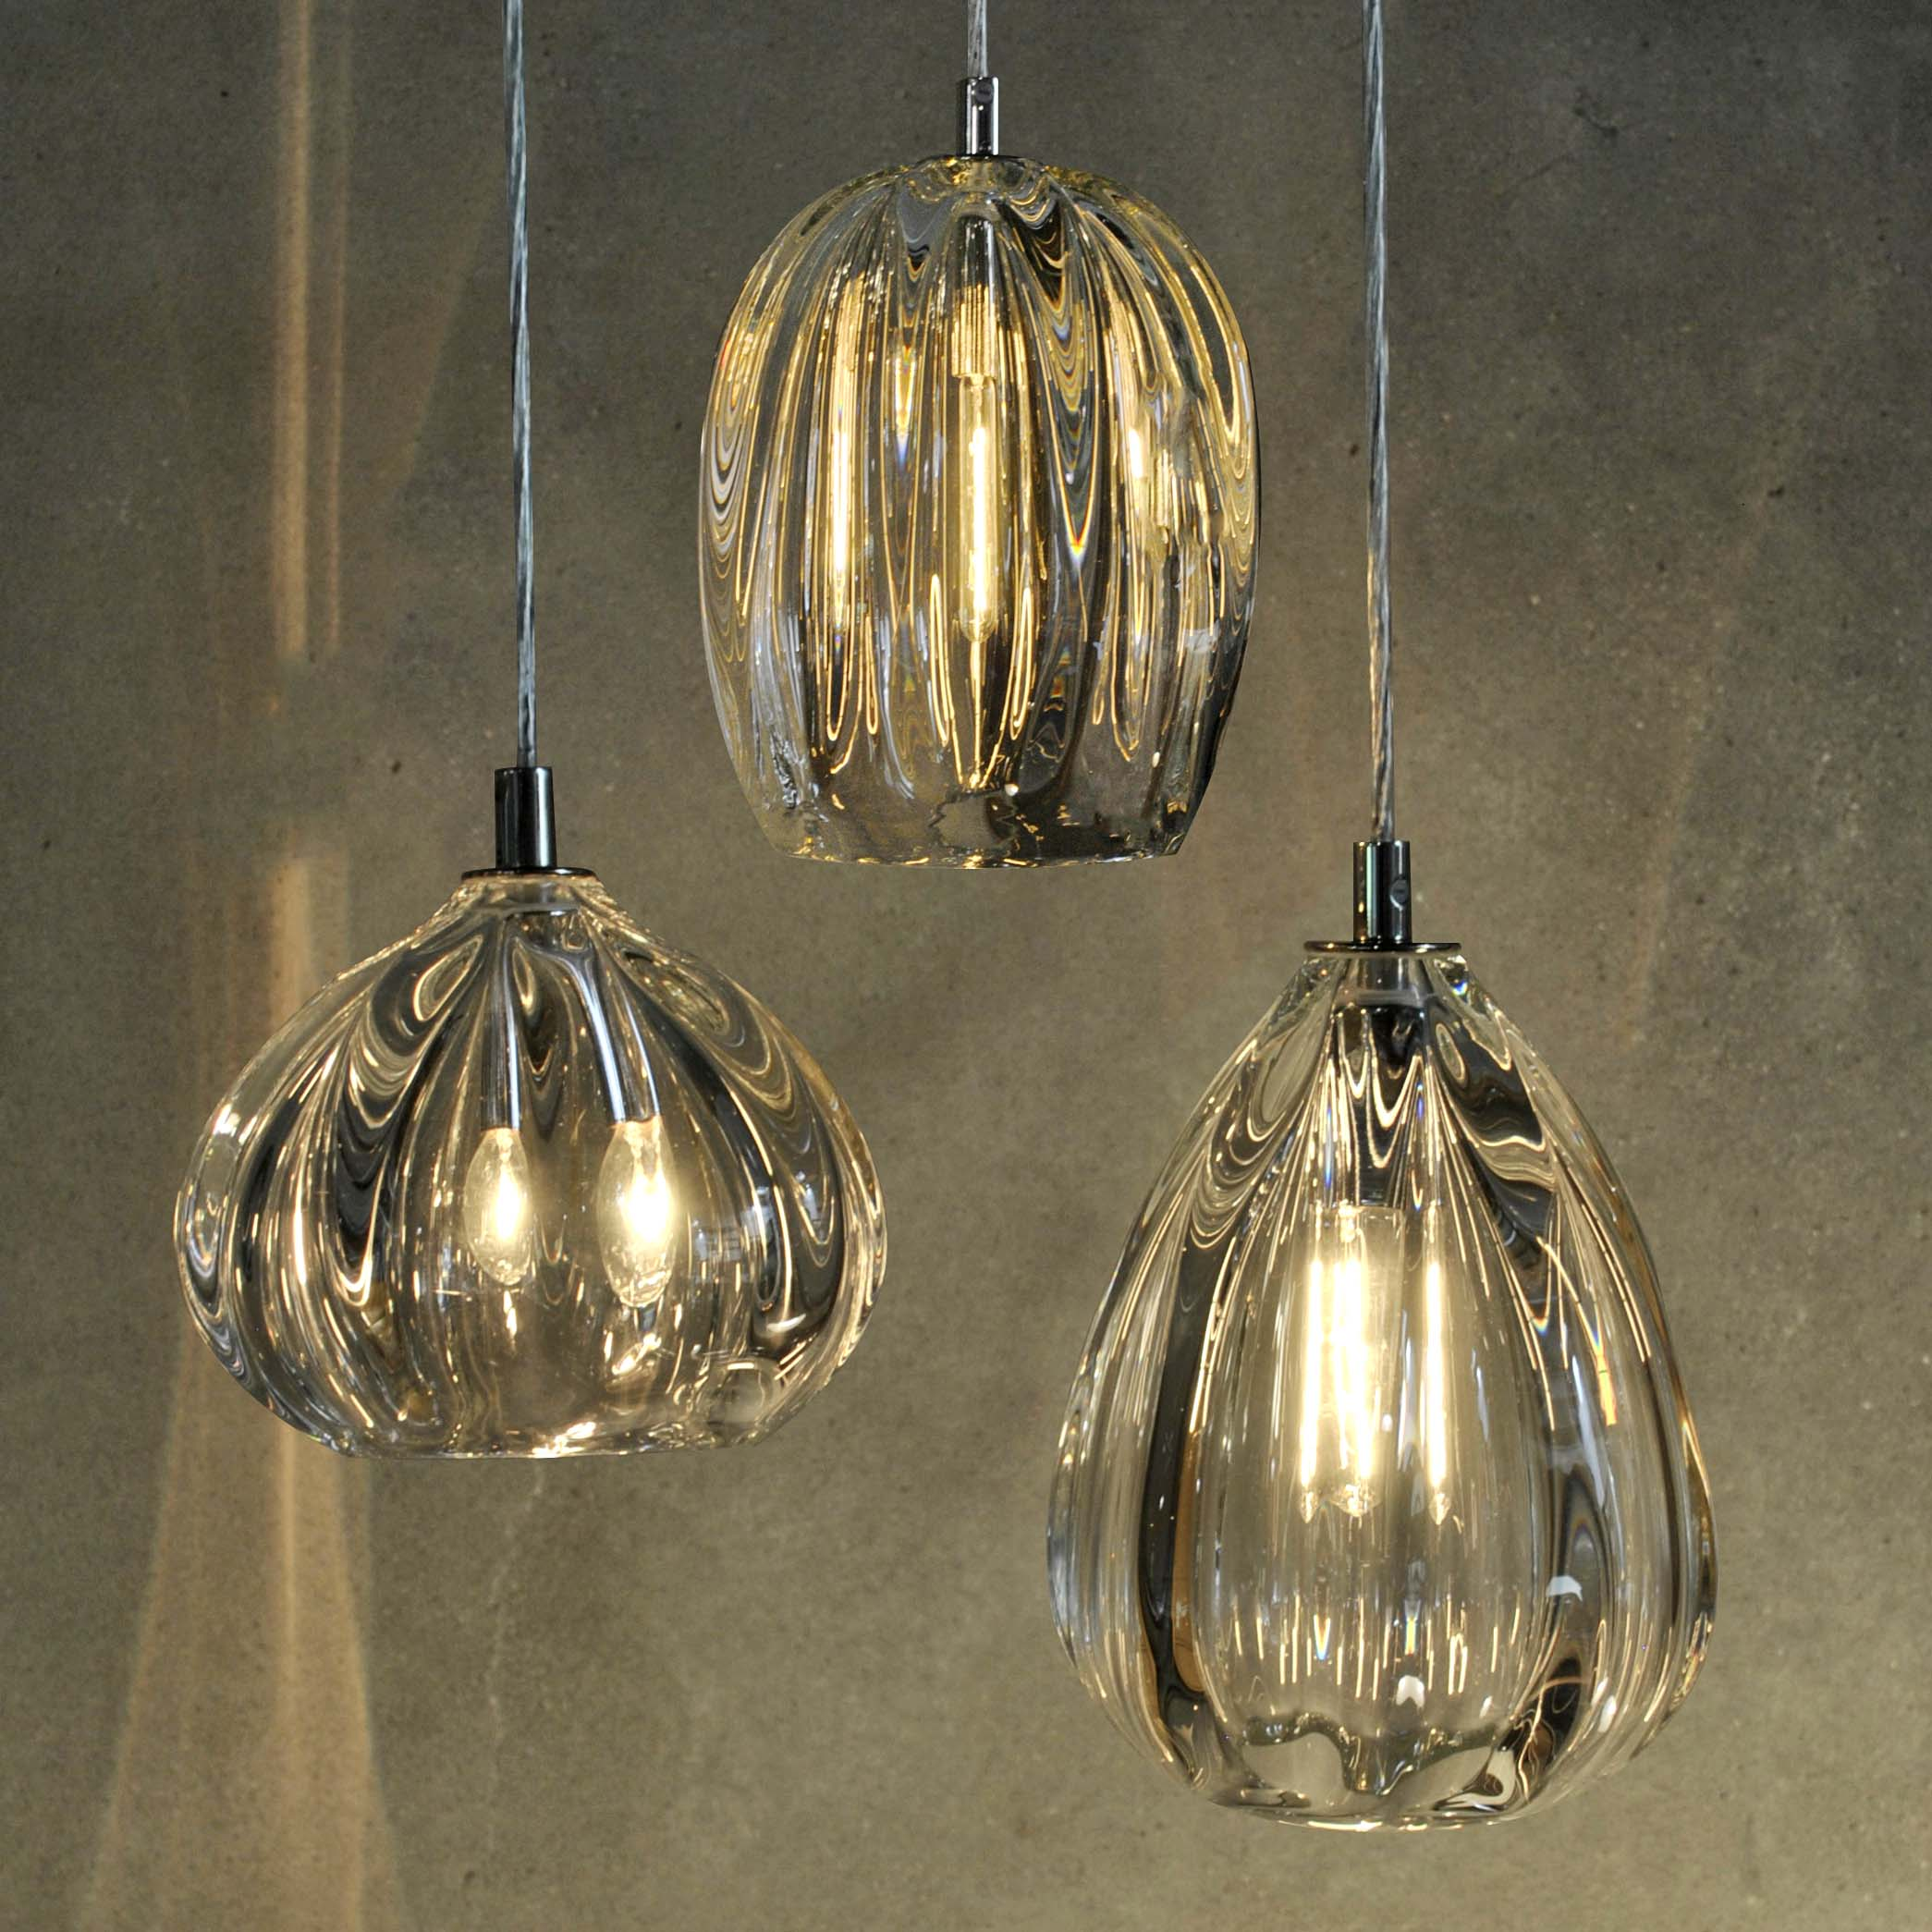 Hand Blown Glass Lighting. Thick Clear Barnacle Barrel Pendant by siemon and salazar